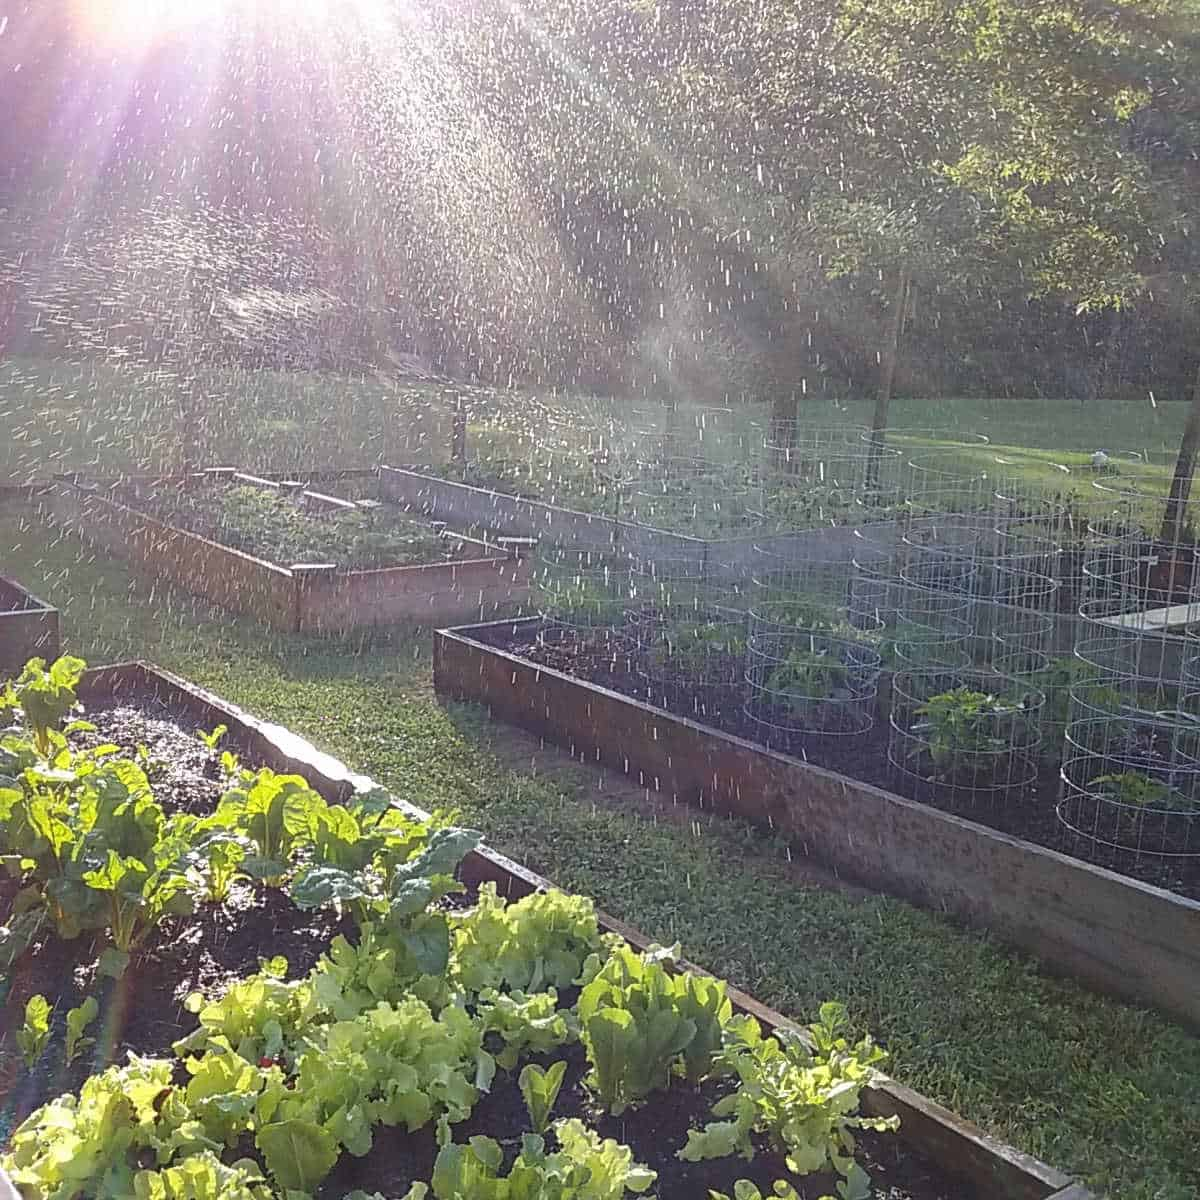 sunlight shining through water droplets over a raised bed garden